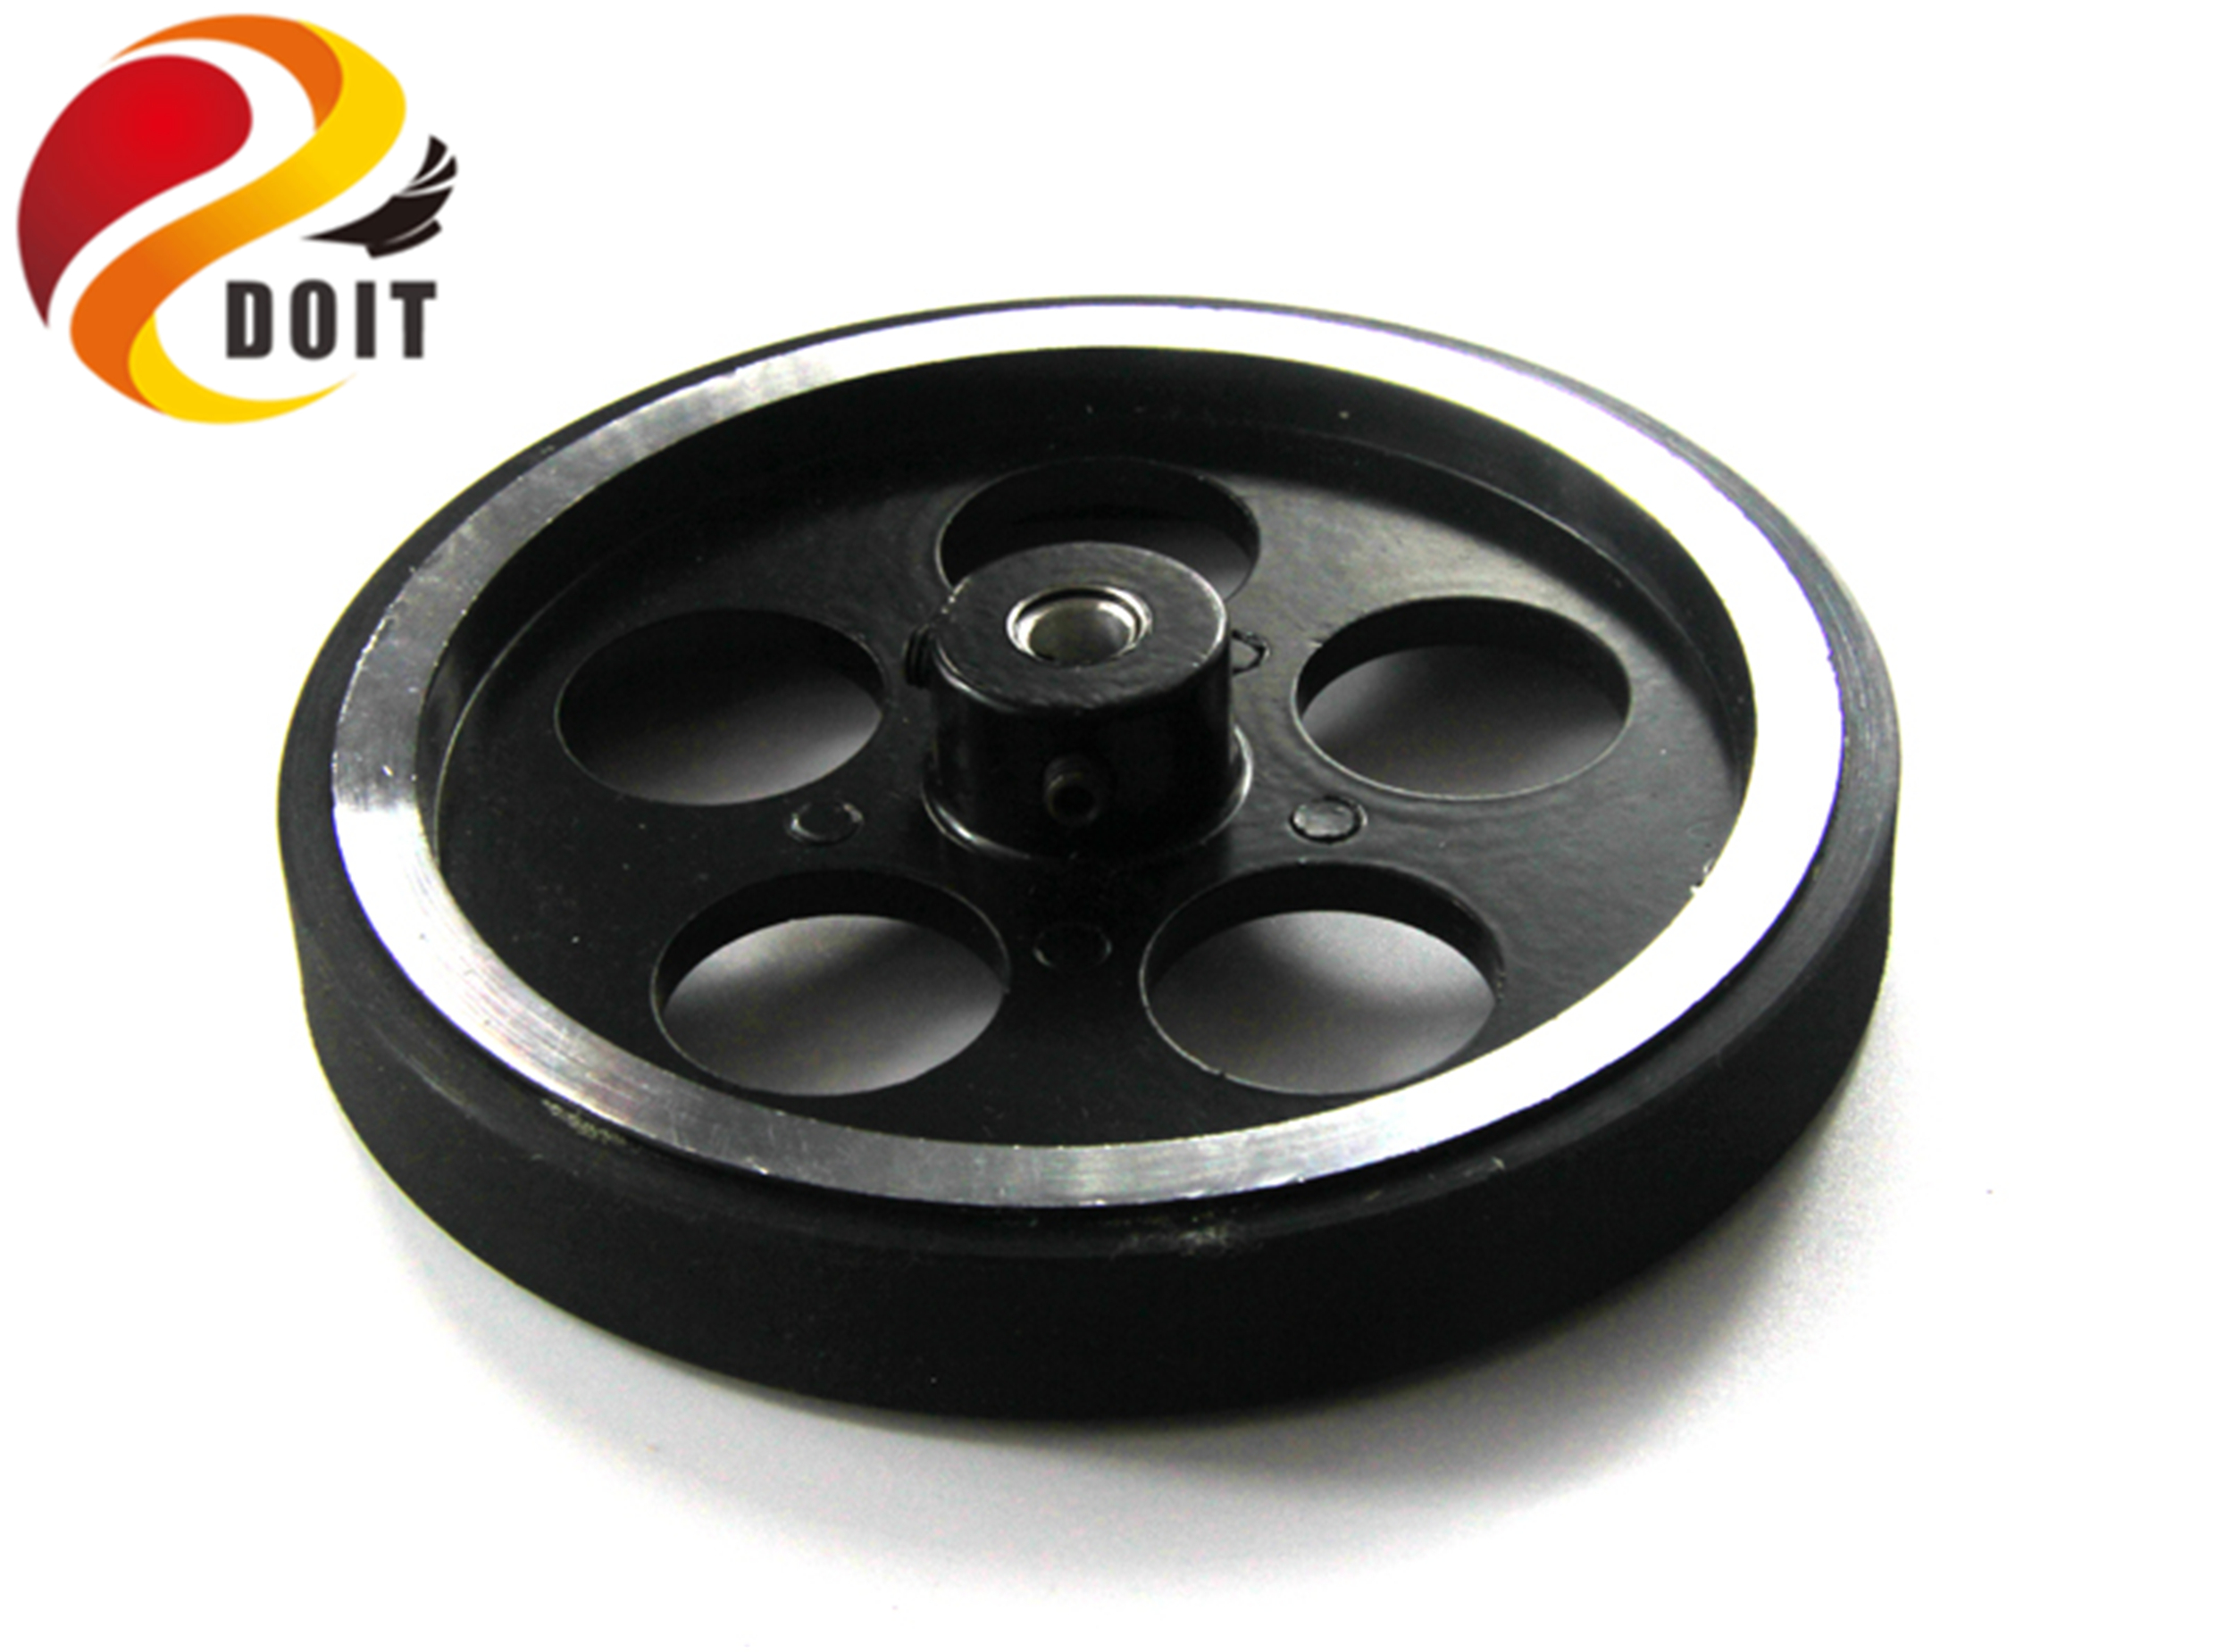 SZDOIT 50-100KG Metal Load-bearing Wheel for RC Robot Car Toy Parts Supporting Wheels Diameter 65mm/95mm